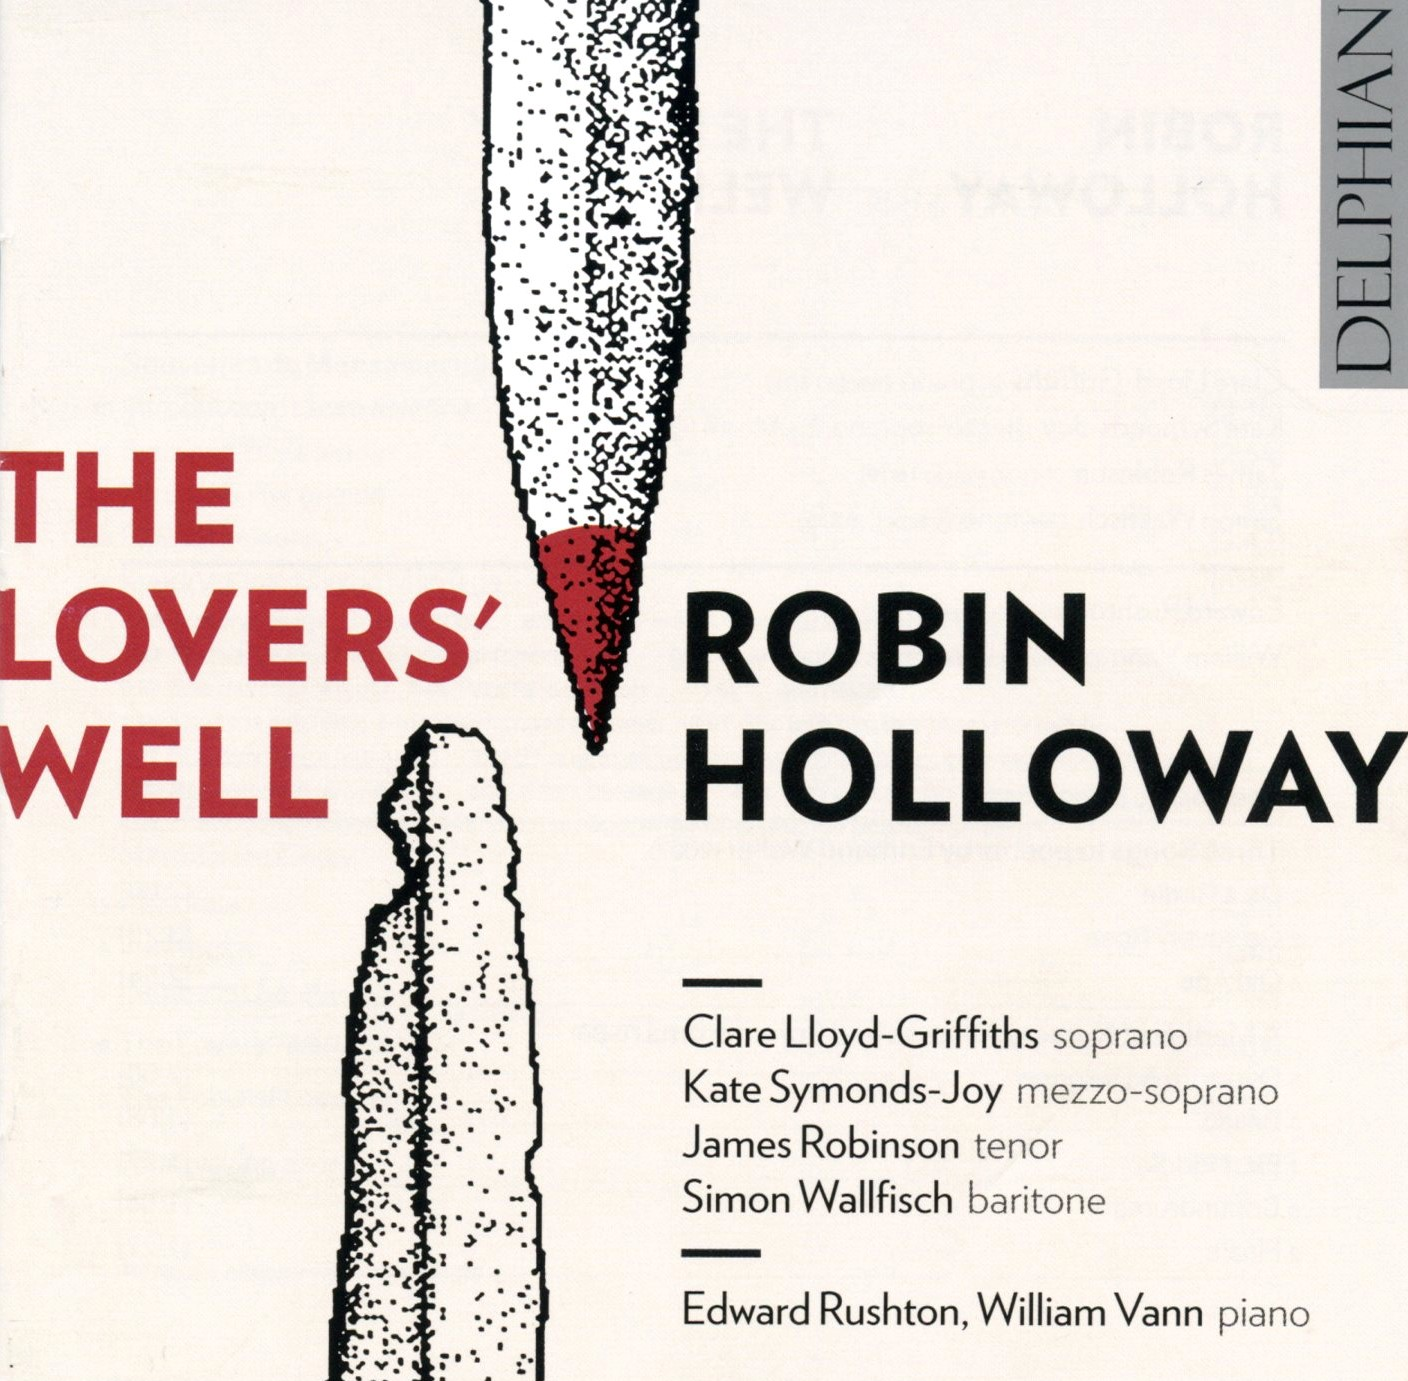 The Lovers' Well Robin Holloway CD image